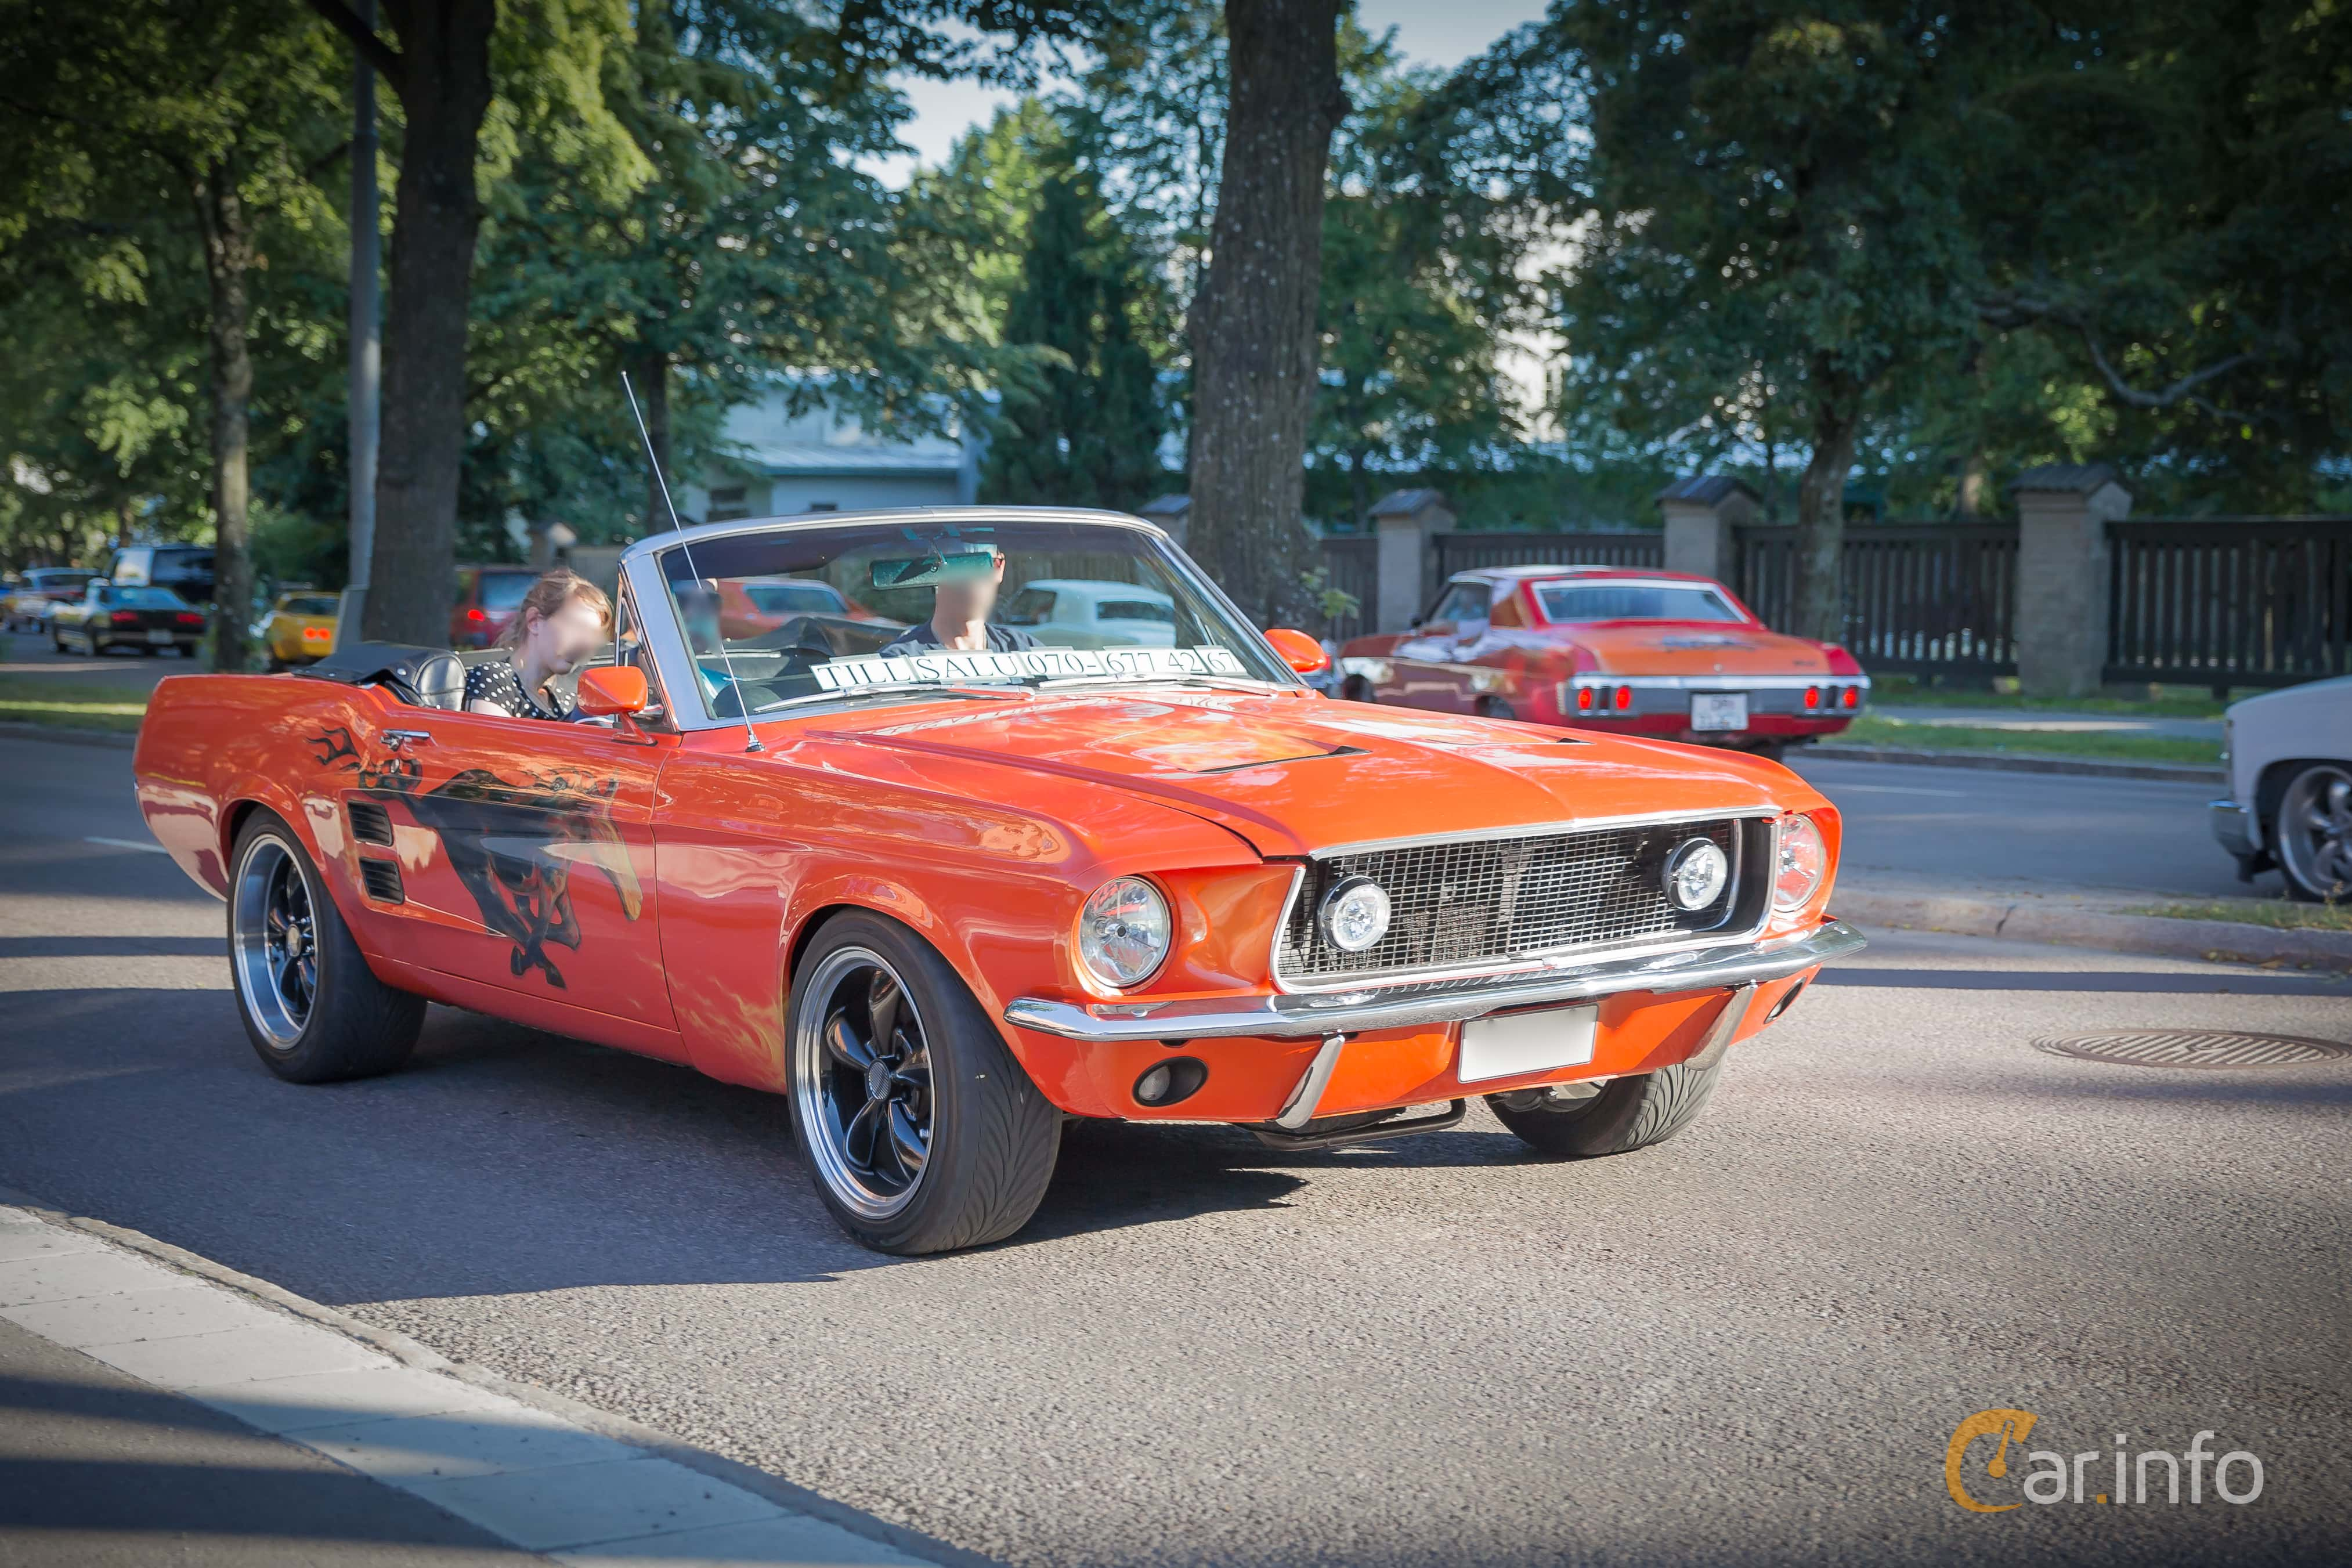 Ford mustang convertible 4 7 v8 184hp 1967 by marcusliedholm